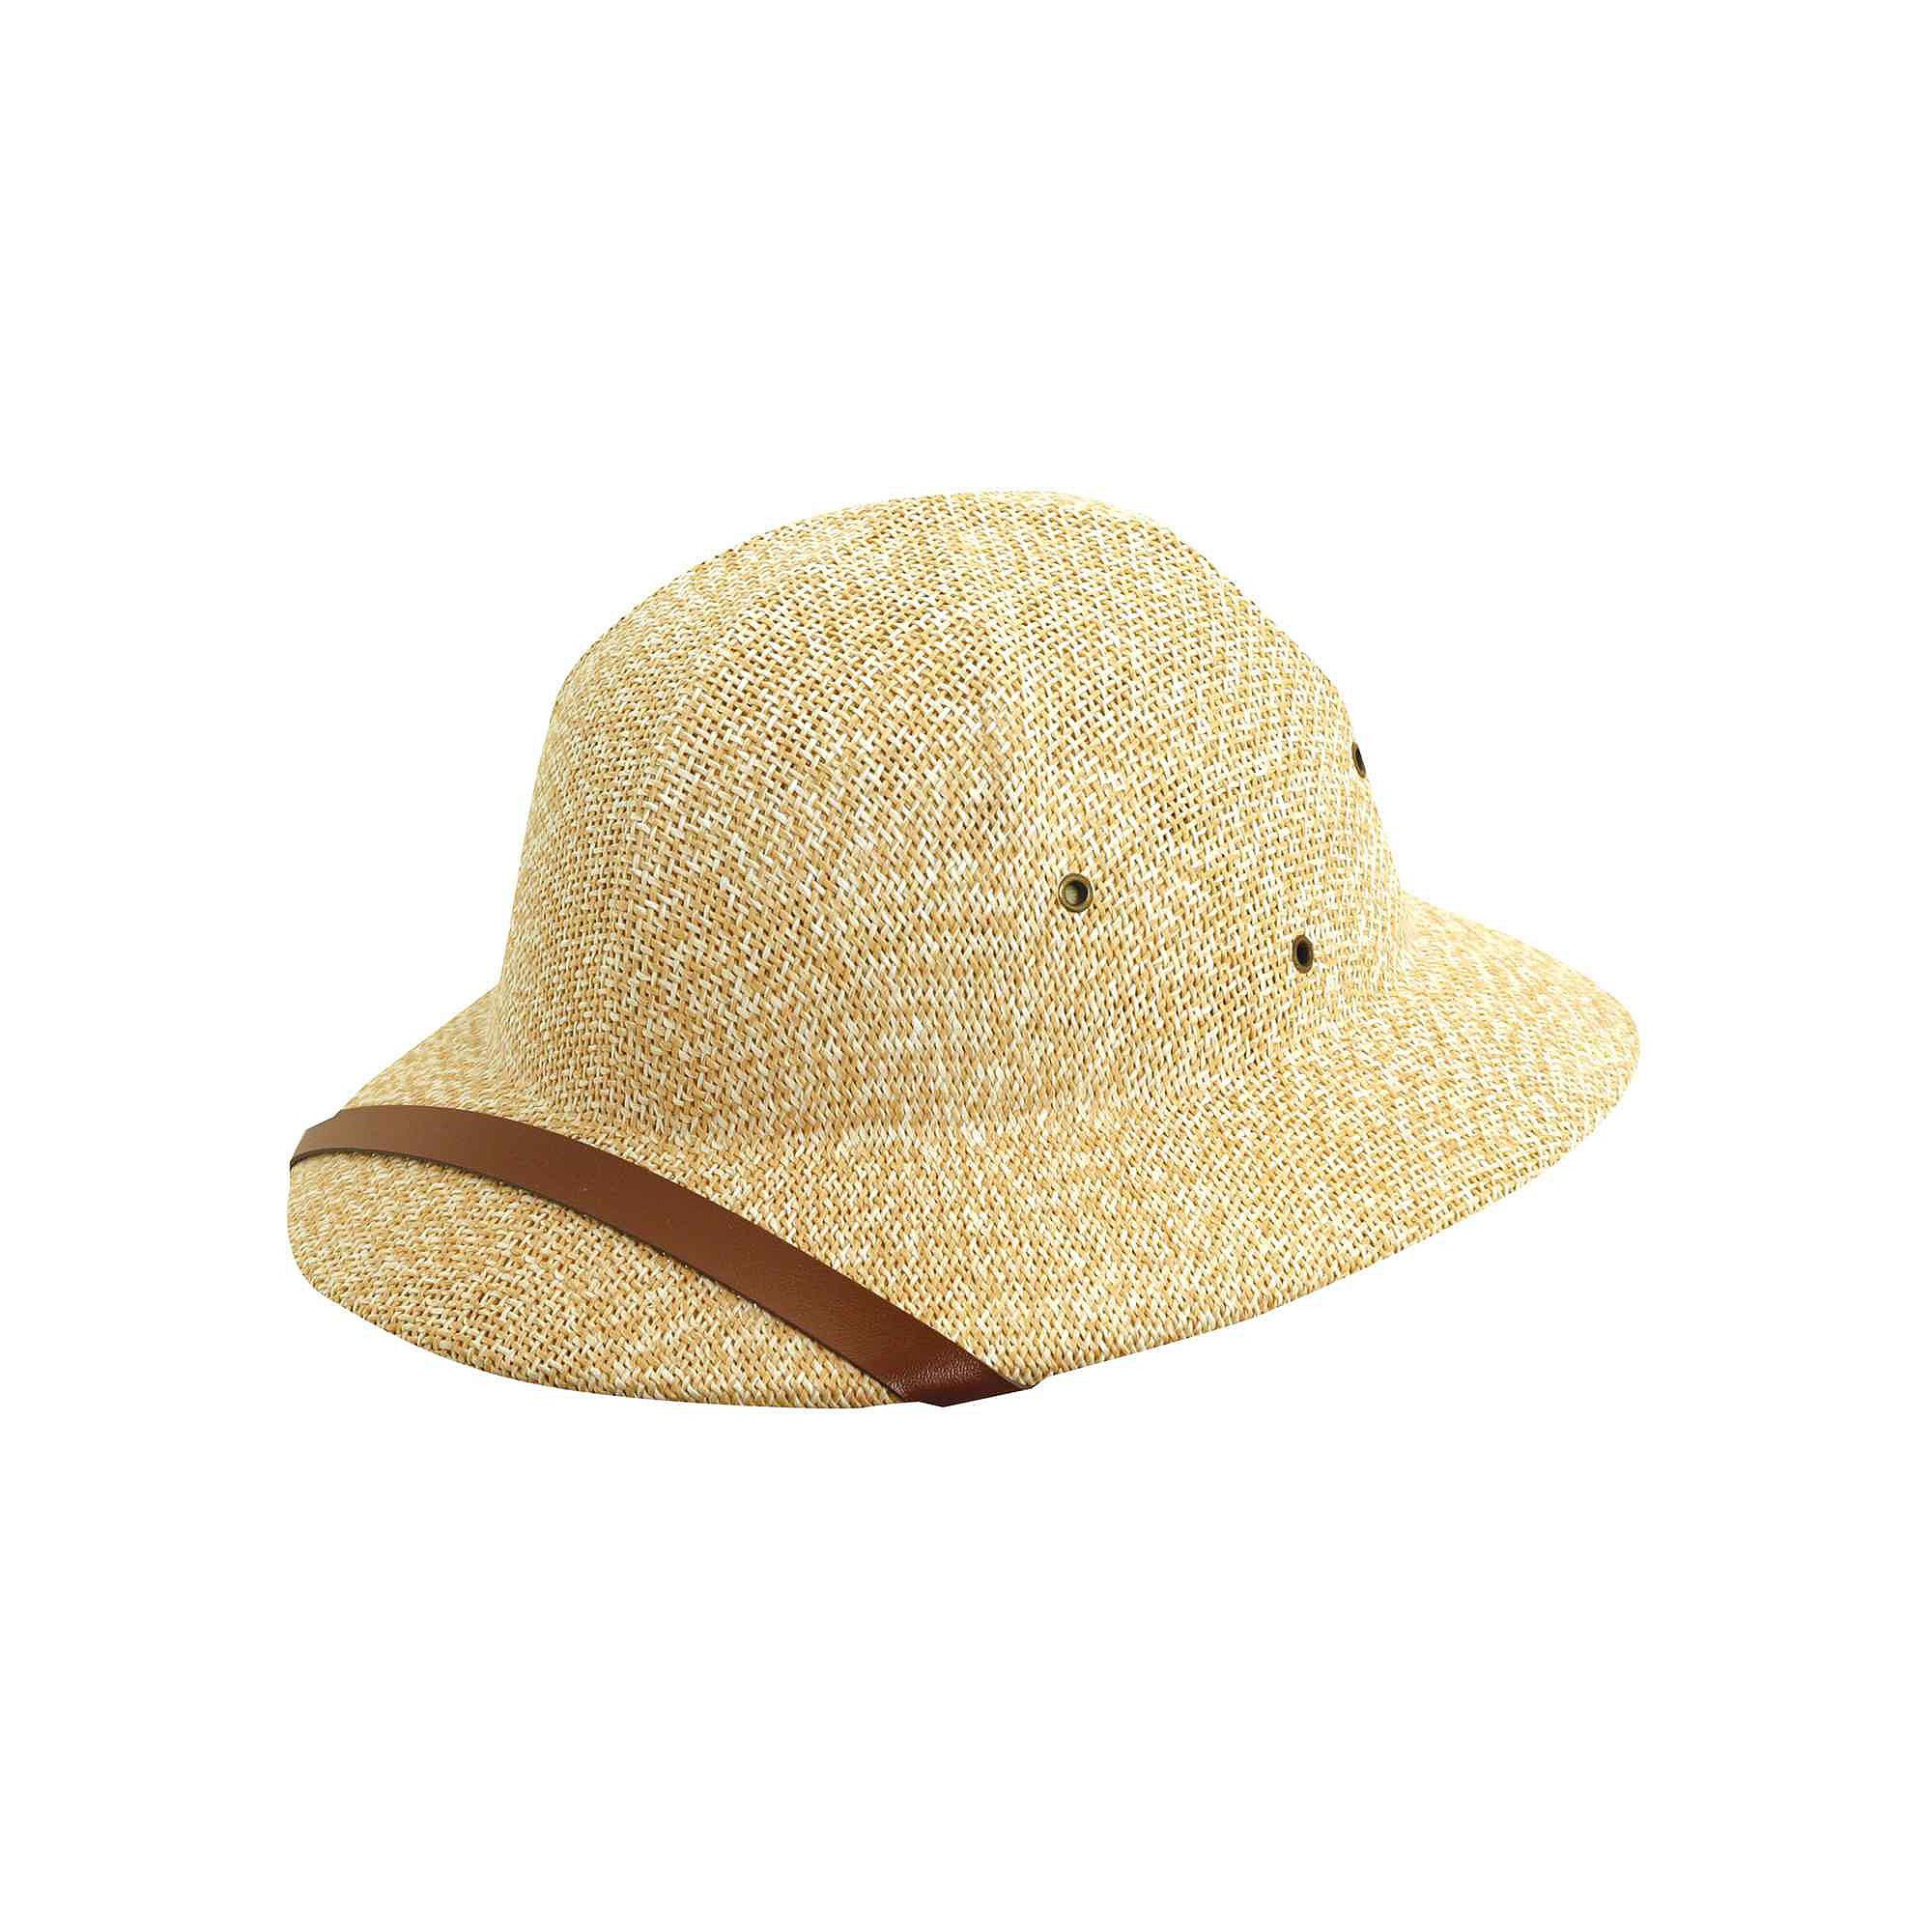 DPC Global Trends Men's Fine Twisted Toyo Pith Helmet, Tan/White, One Size